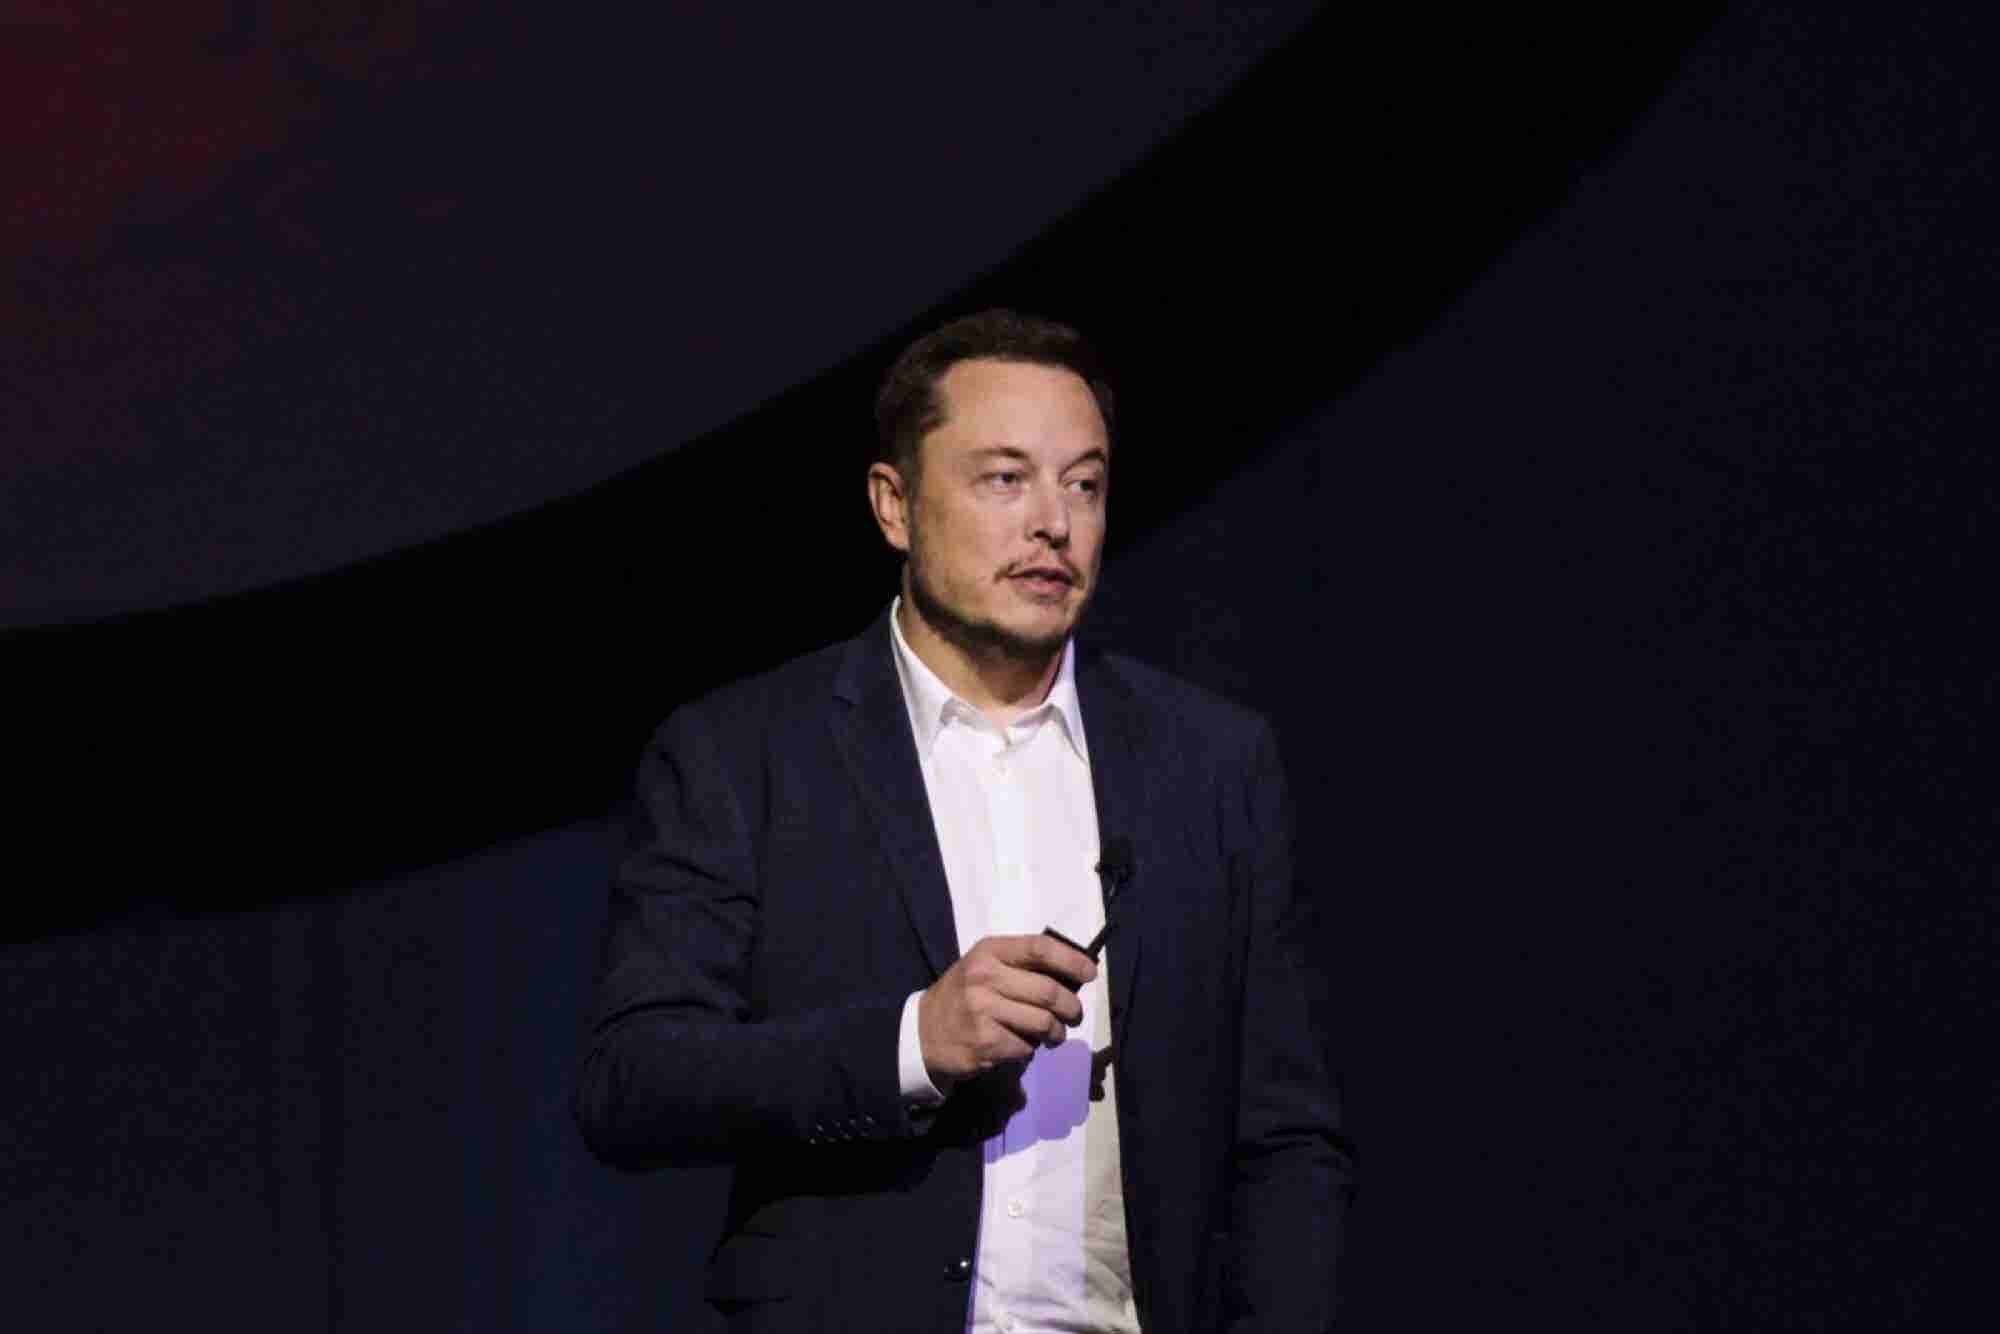 Find Your Startup's Equivalent of Elon Musk's Mission to Mars